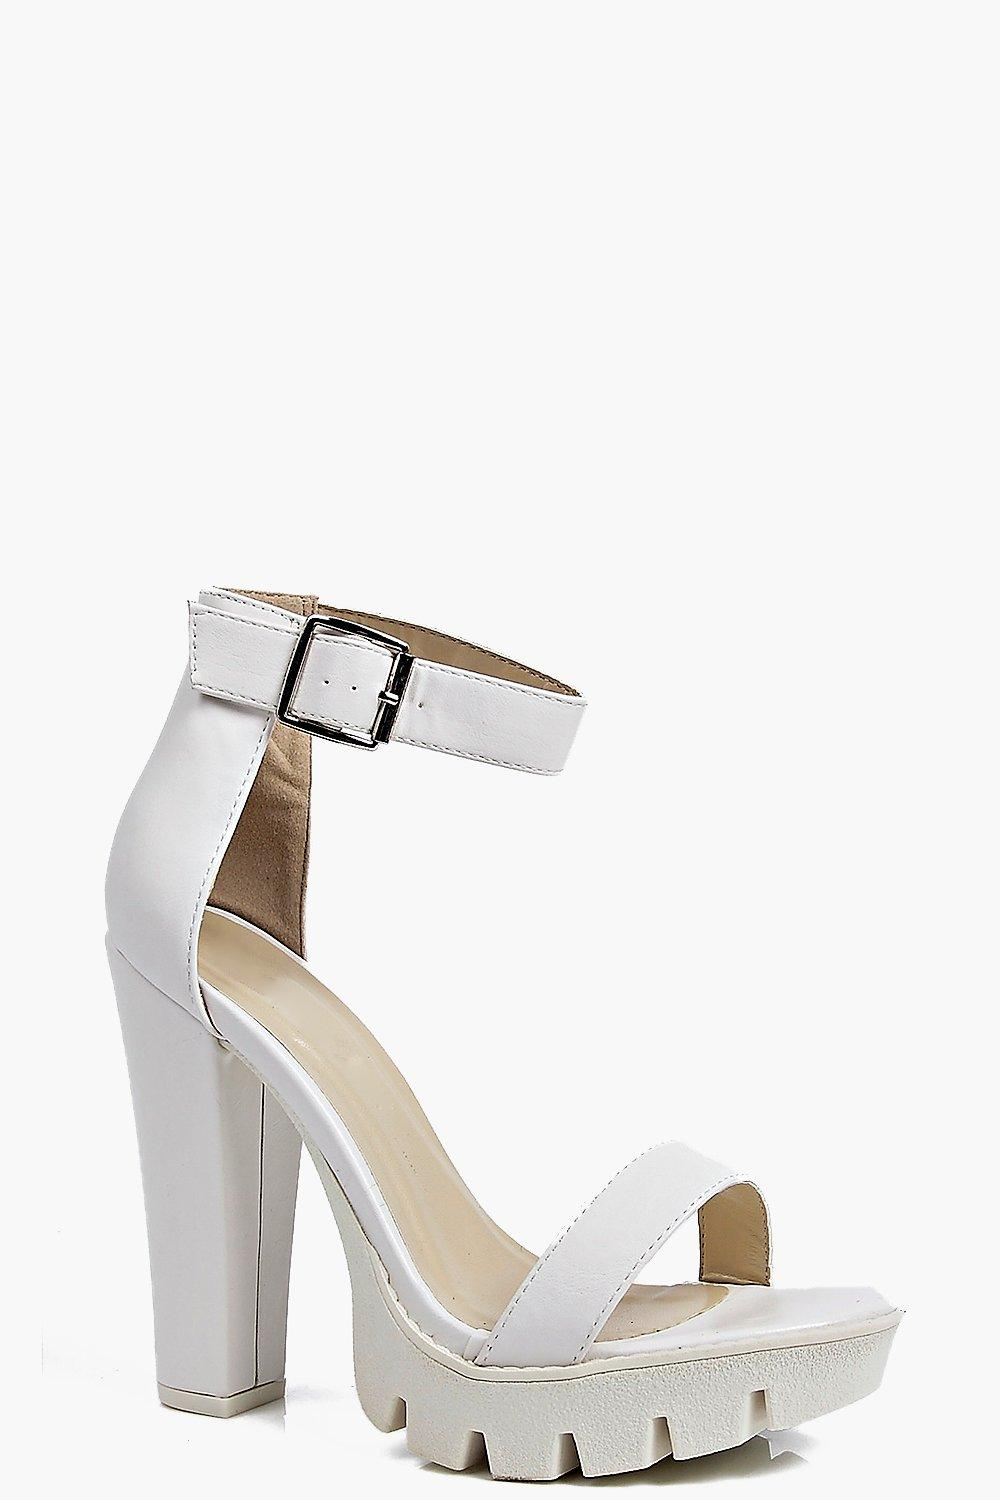 Laura Cleated Platform Heels